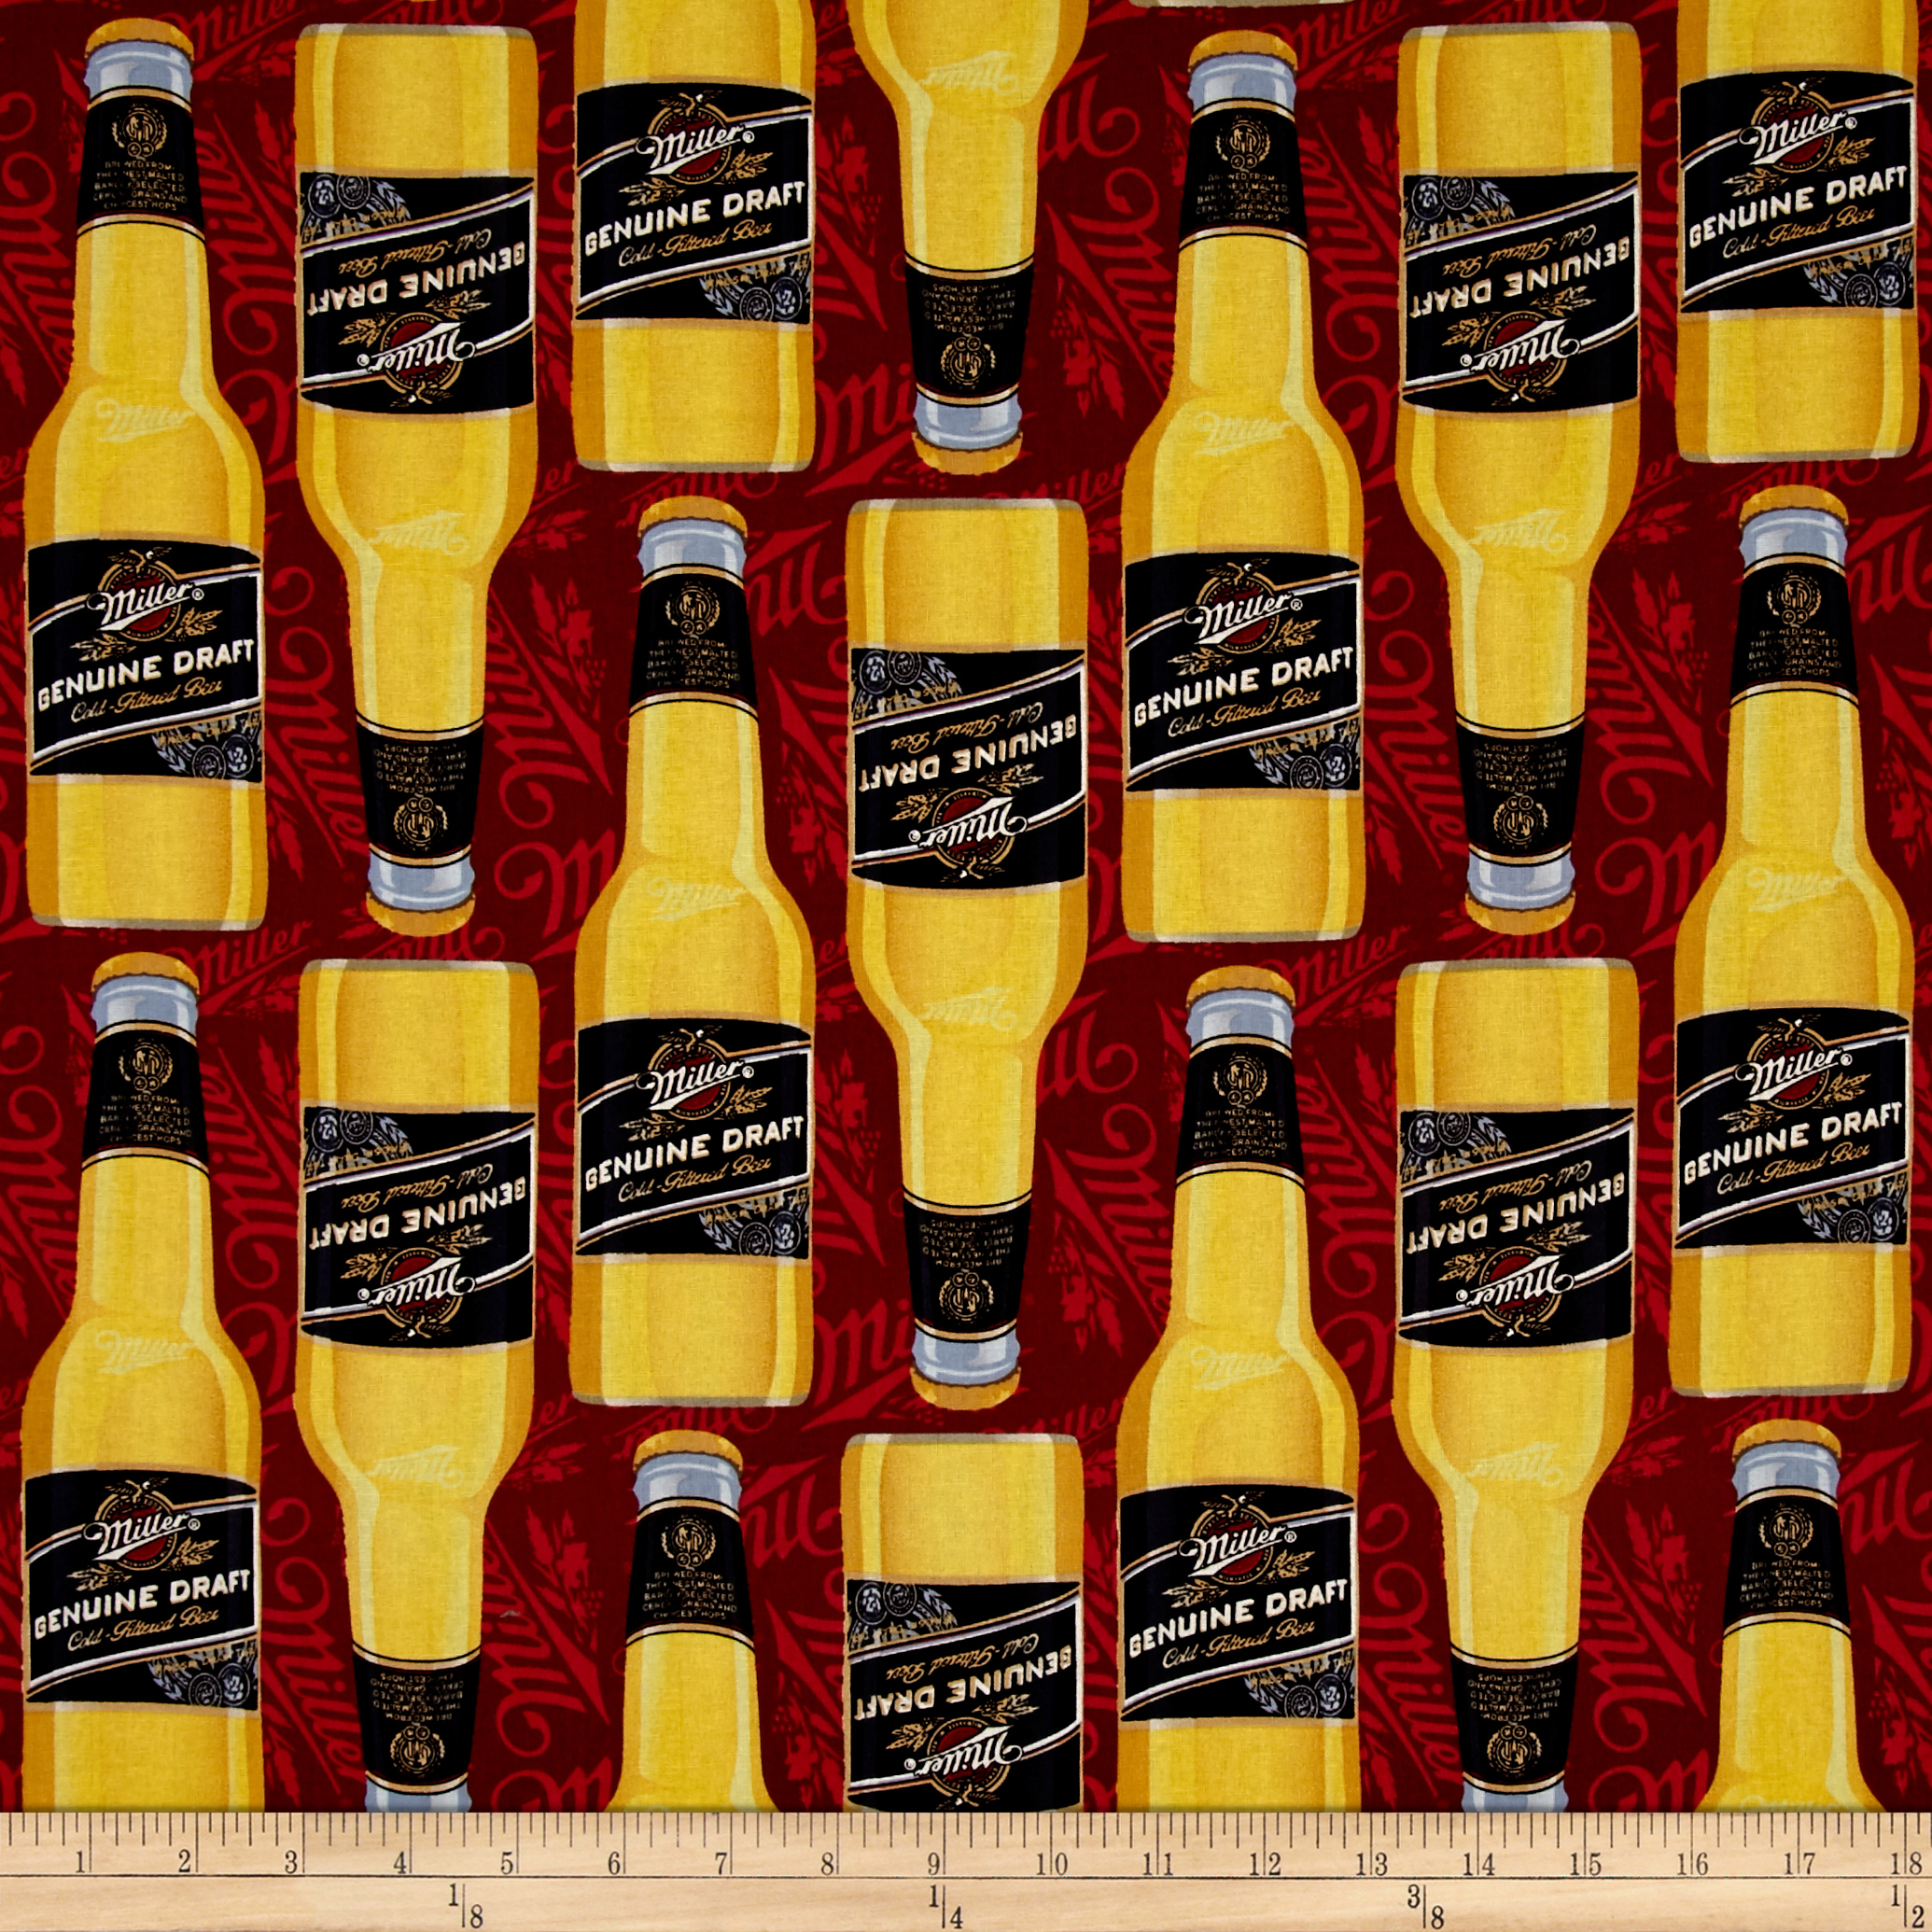 MillerCoors Genuine Draft Bottles Red Fabric by E. E. Schenck in USA